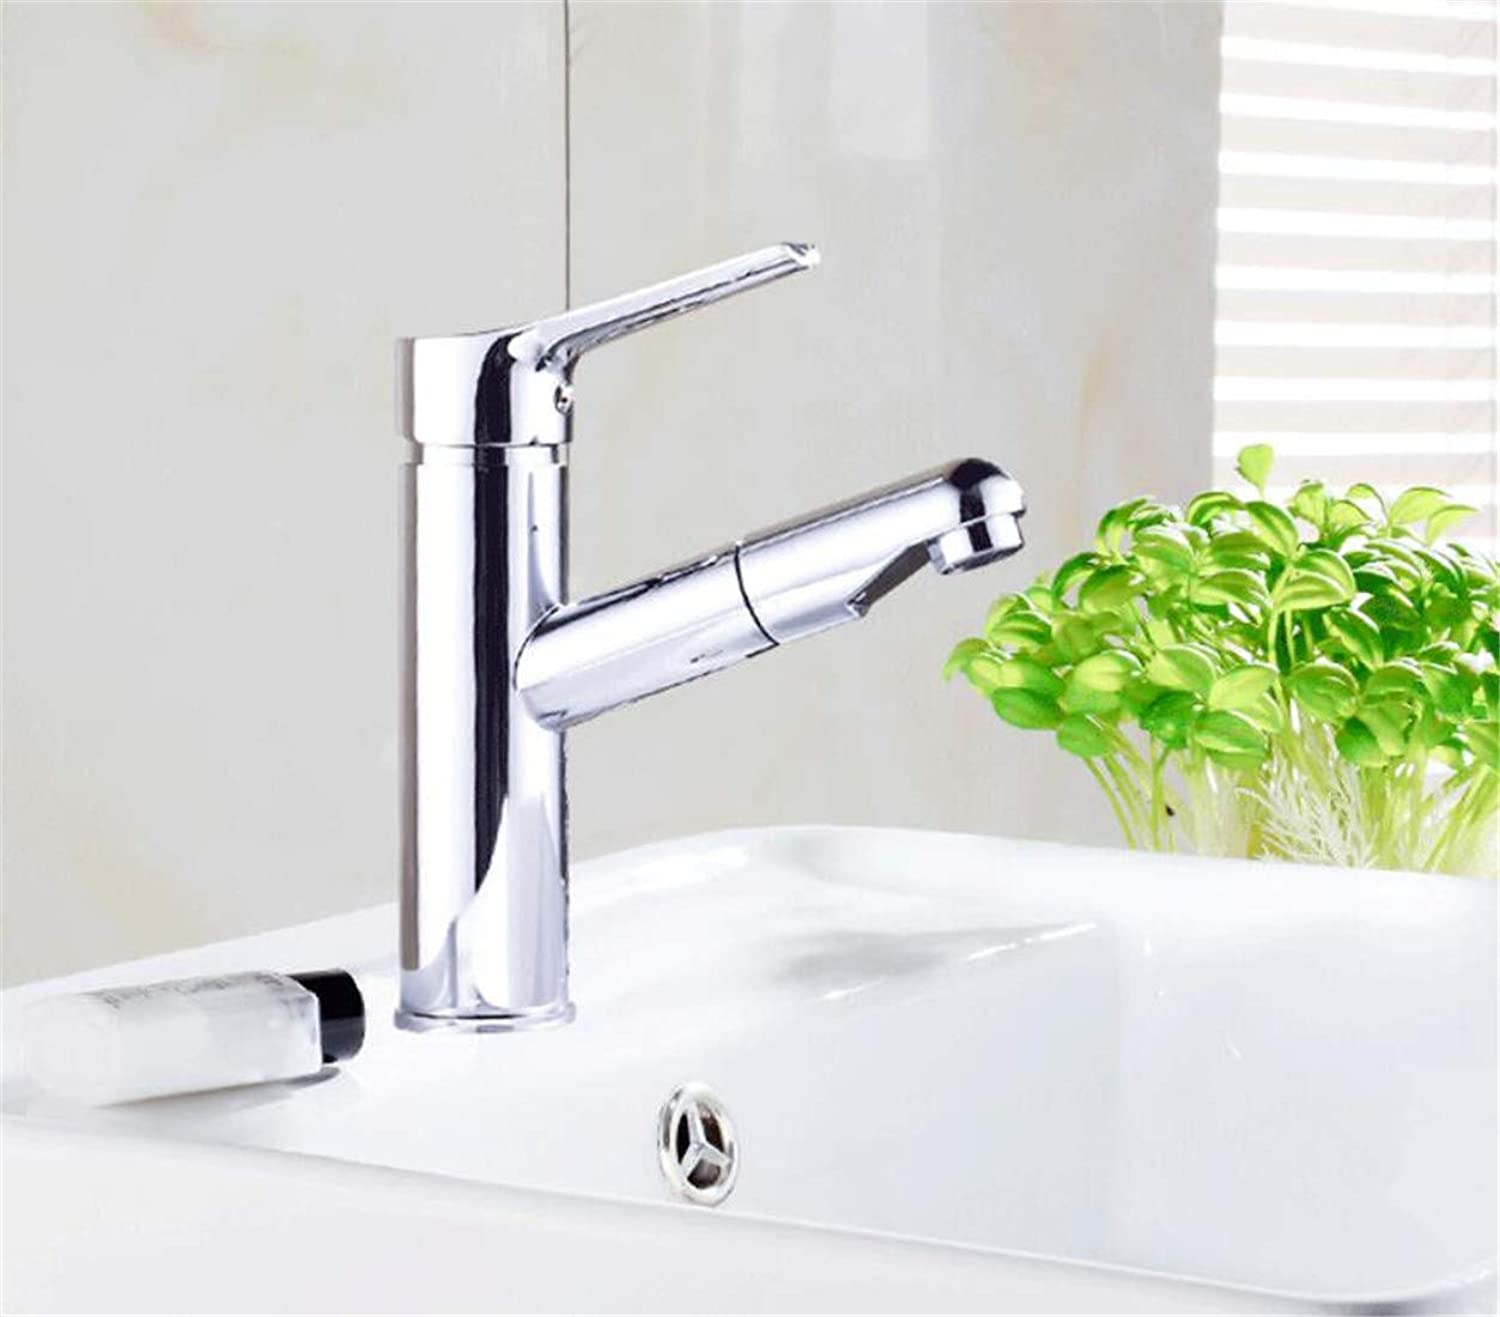 Mucert Tap,Full Copper,Cold and Hot Water,Bathroom Washbasin Faucet,D